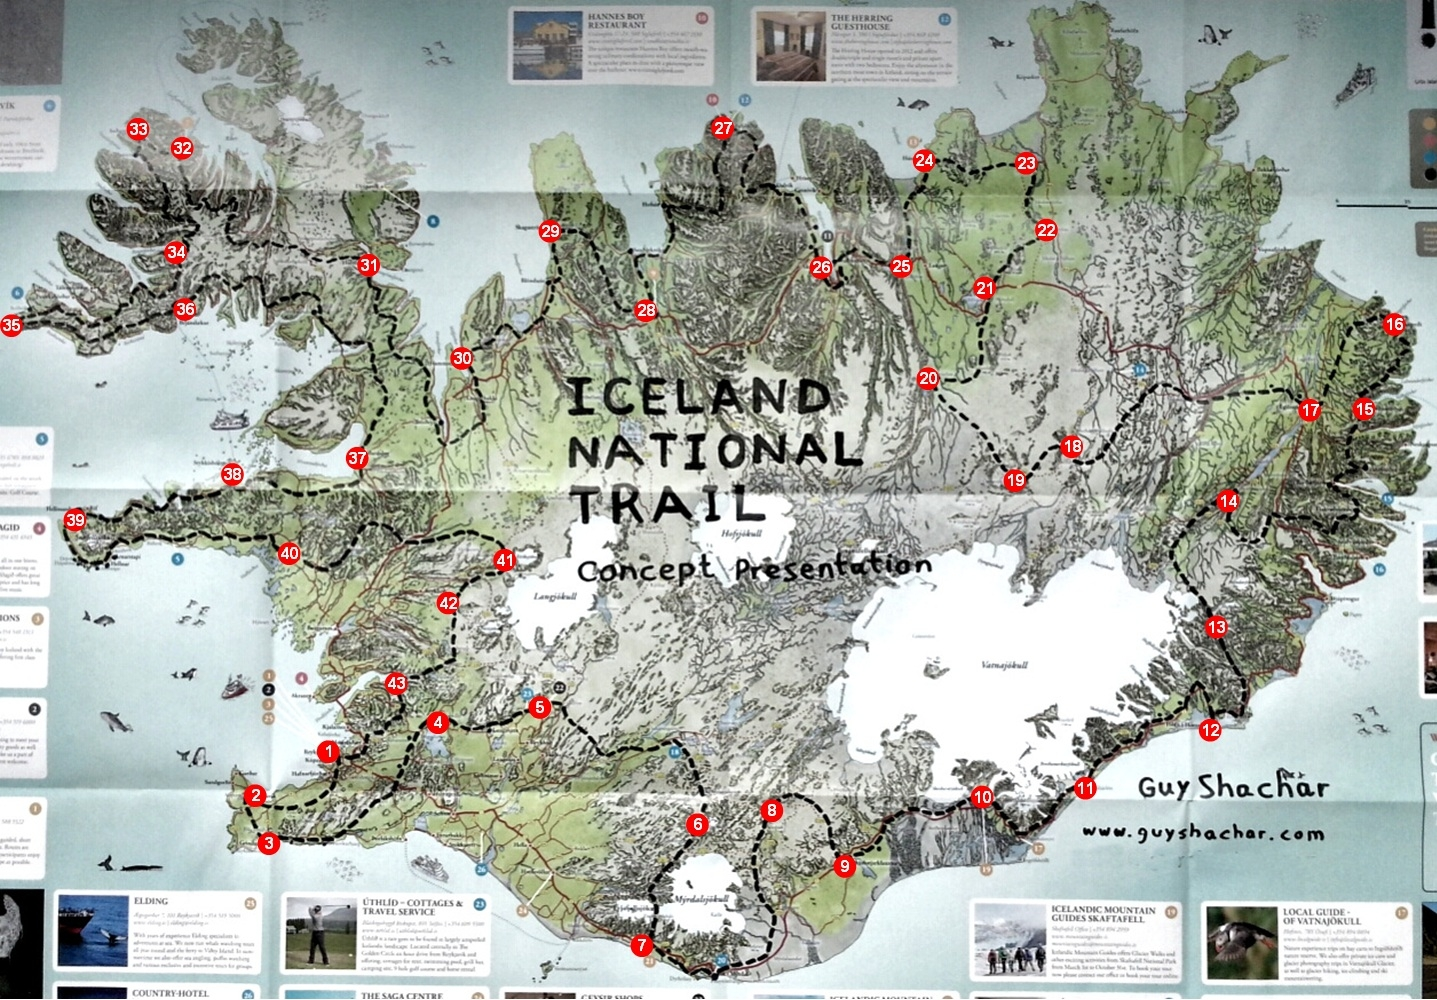 iceland-national-trail-numbered